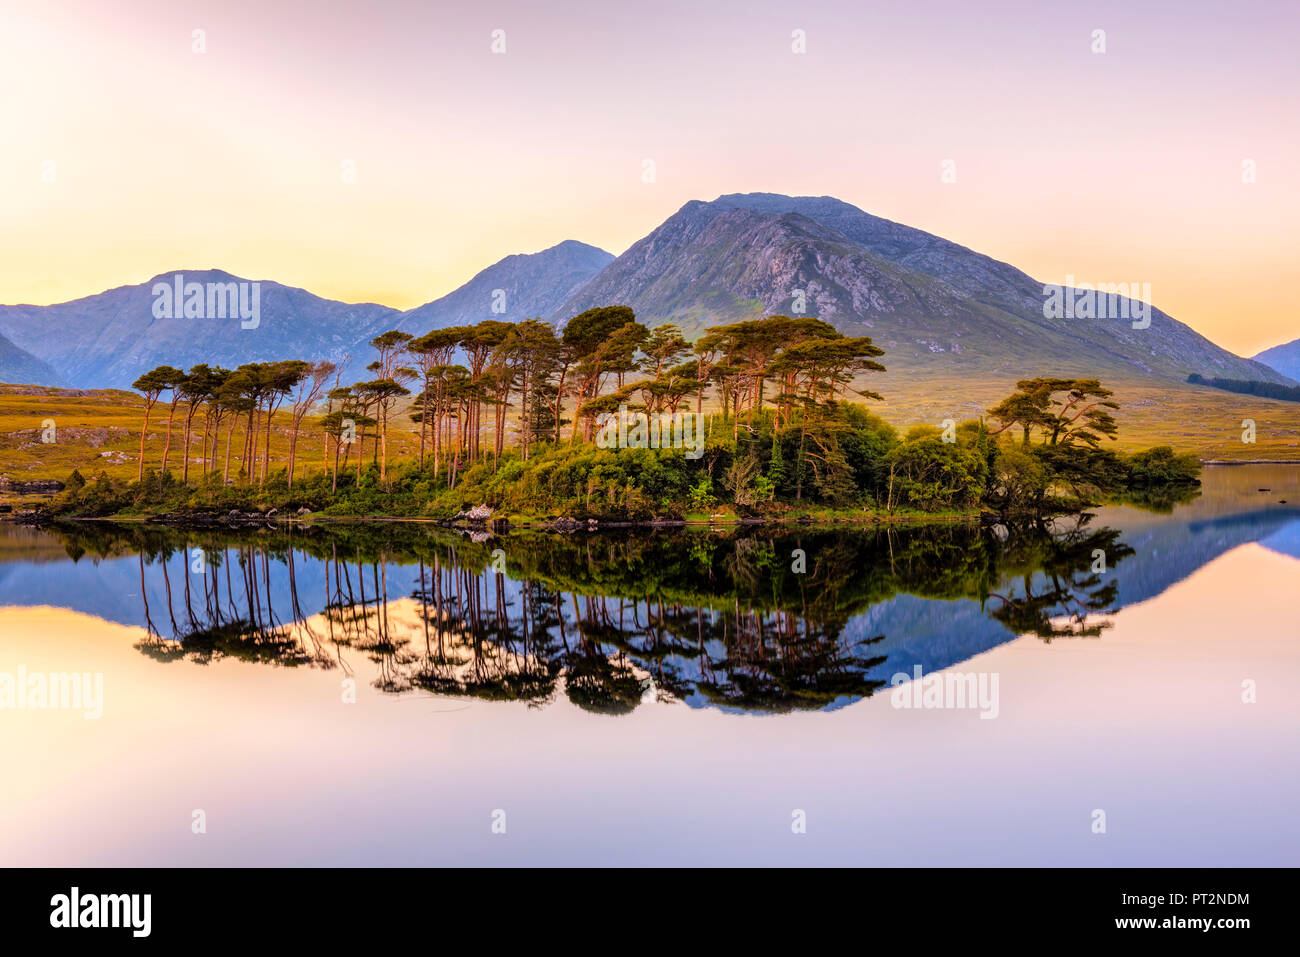 Connemara, County Galway, Connacht province, Ireland, Europe, Lough Inagh lake with Twelve Bens mountain and Pines Island, - Stock Image